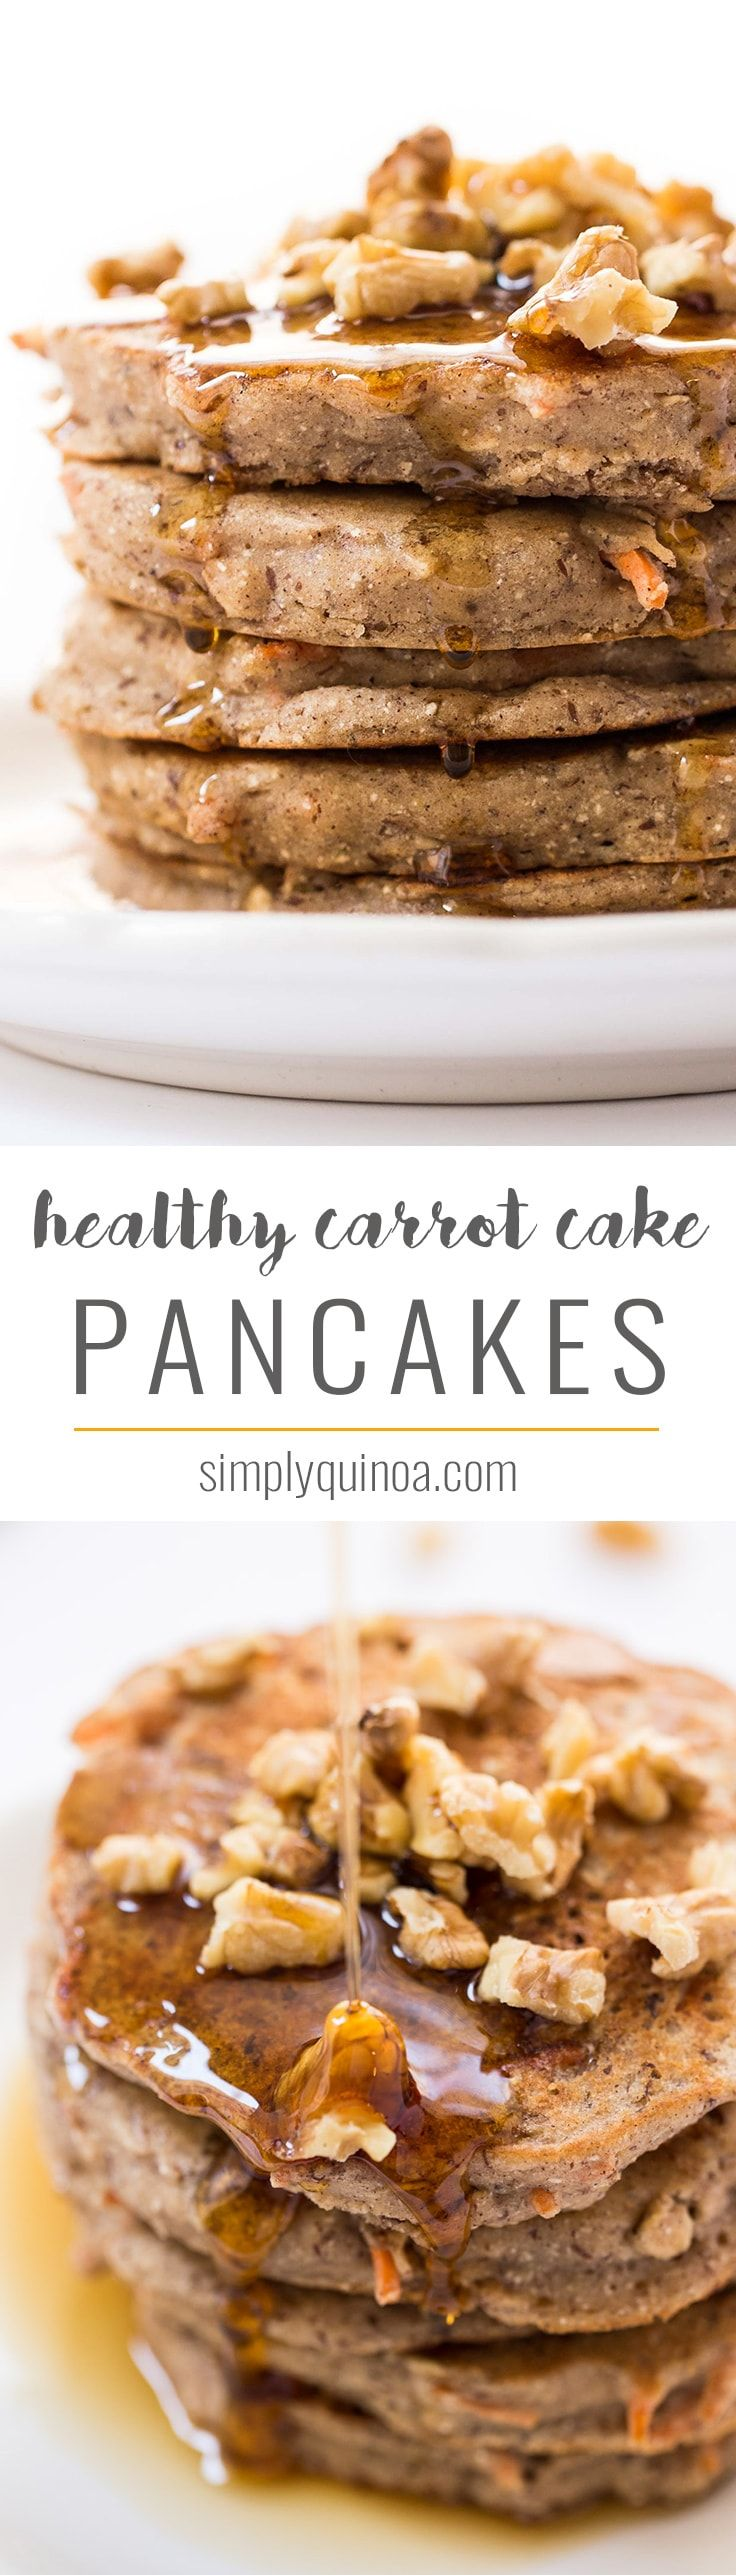 These HEALTHY Carrot Cake Pancakes are packed with nutritious ingredients like quinoa, almond, flax and coconut! The perfect way to kickstart your day!